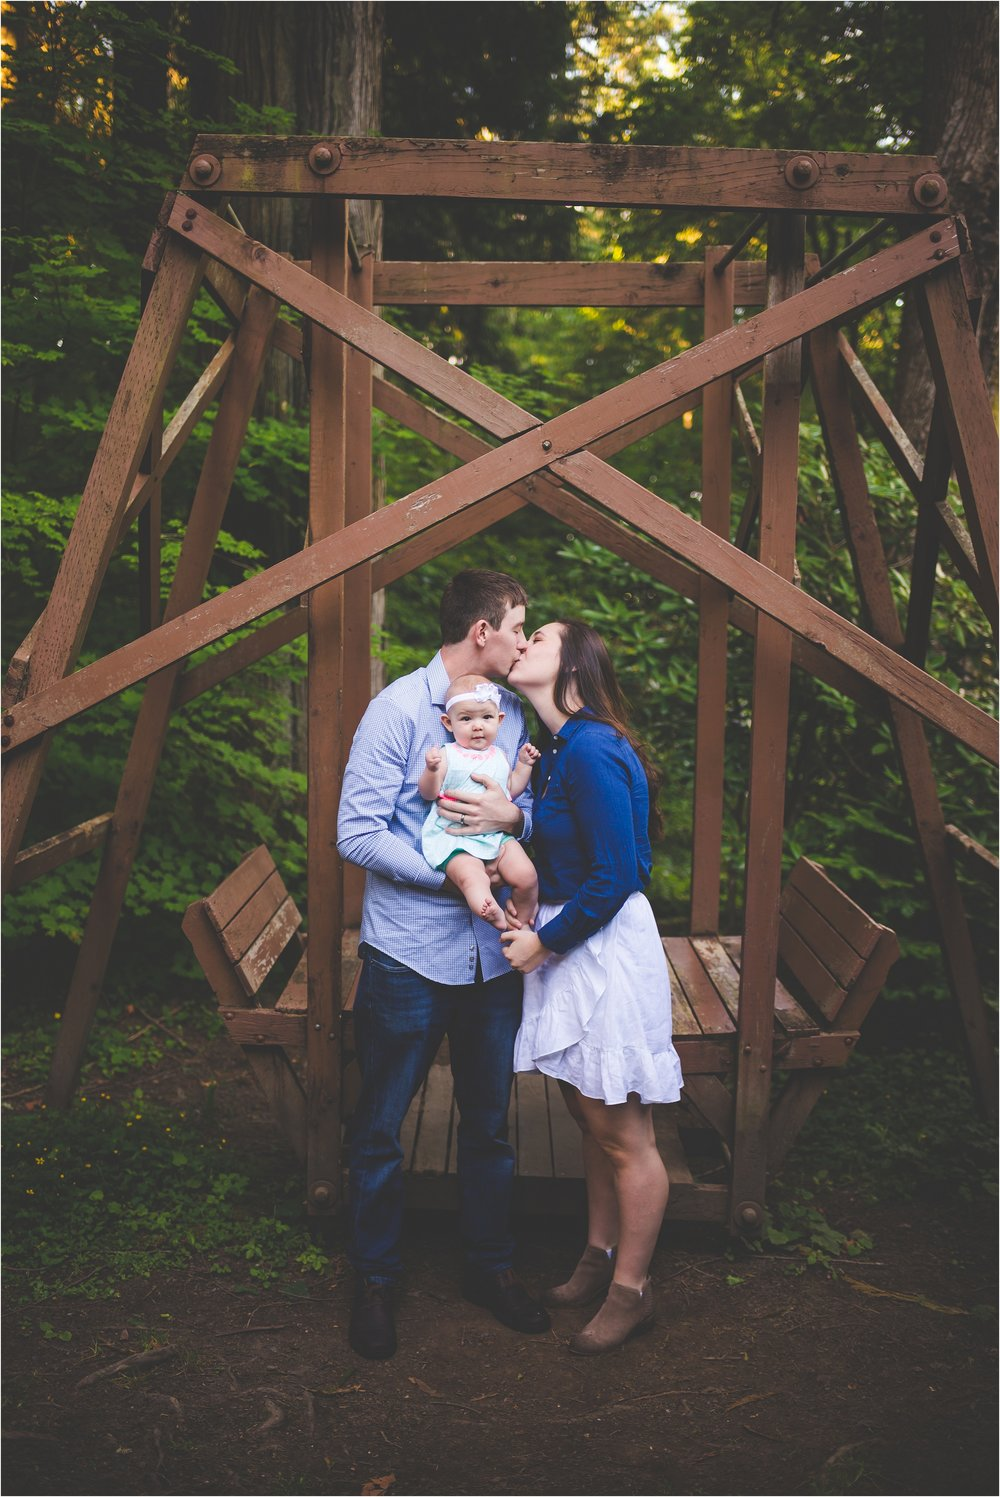 priest-point-park-olympia-wa-family-session-jannicka-mayte-anchorage-alaska-seattle-washington-family-photographer_0006.jpg